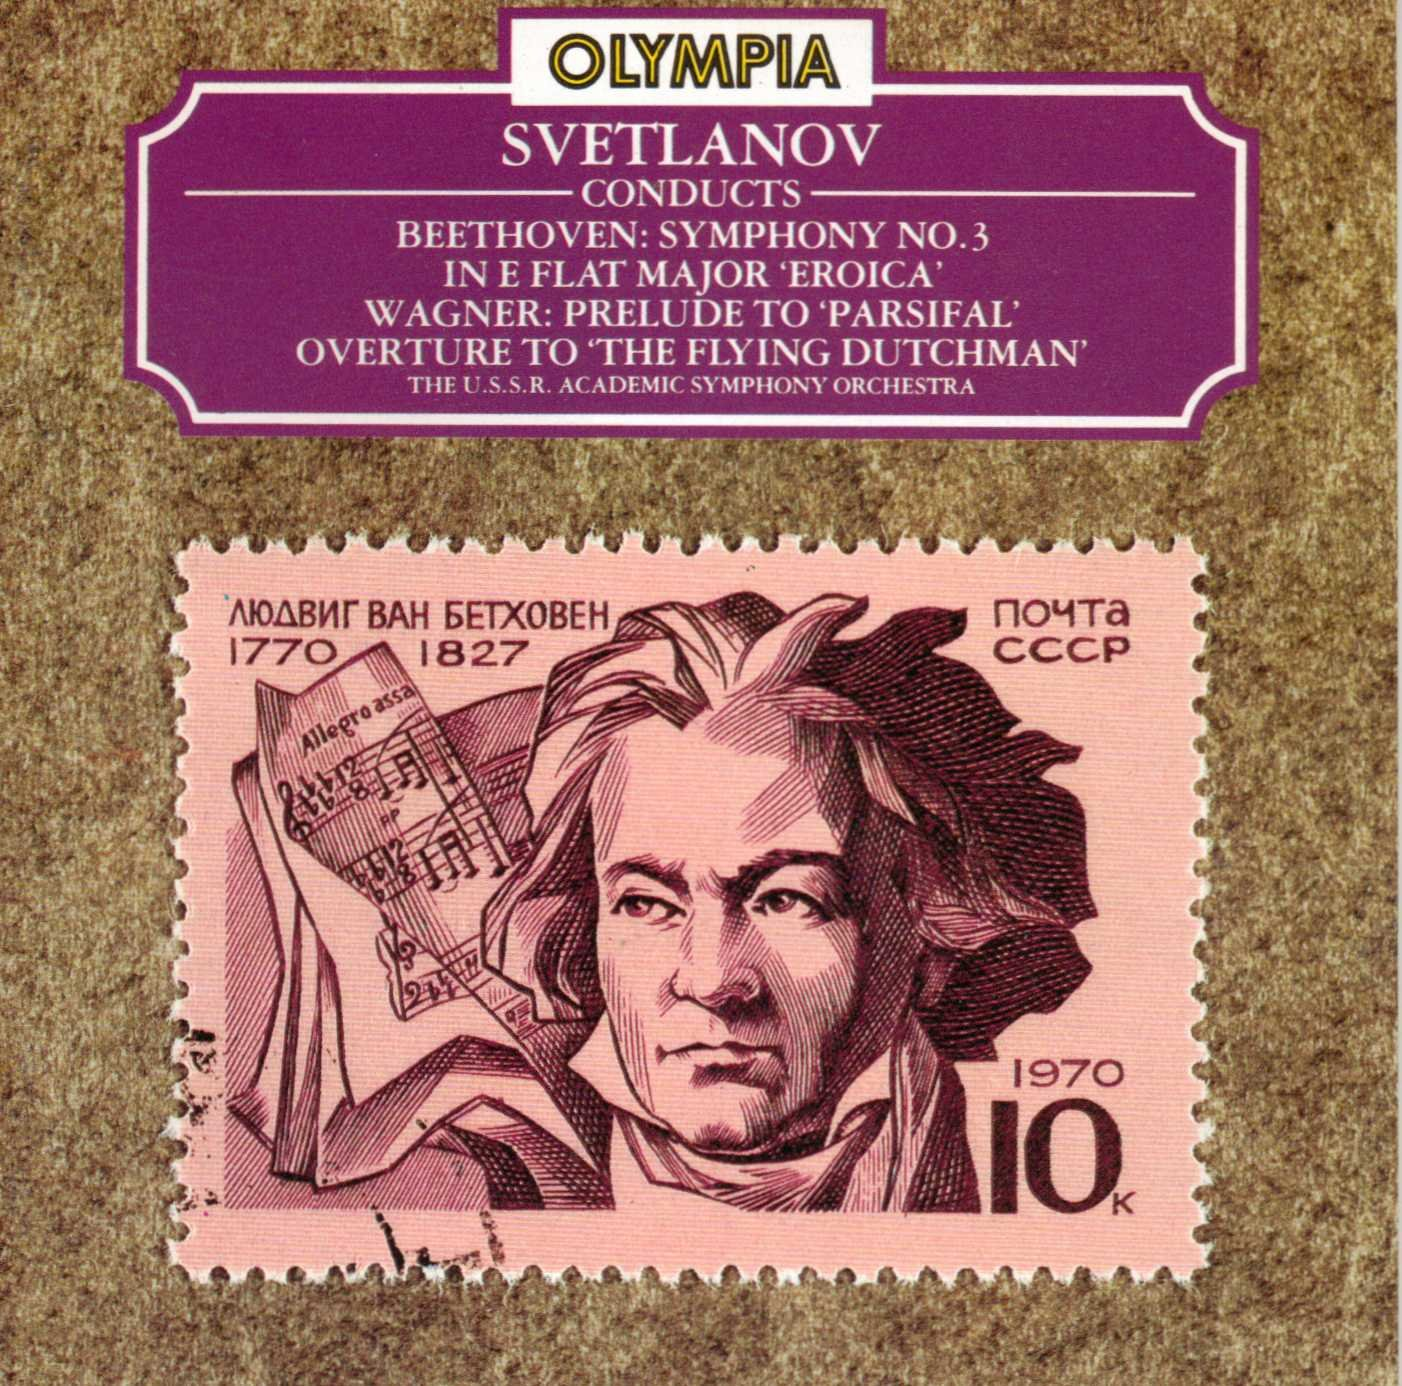 Svetlanov Conducts: Beethoven - Symphony No. 3 / Wagner - Prelude to 'Parsifal' & Overture to 'The Flying Dutchman' by Melodiya